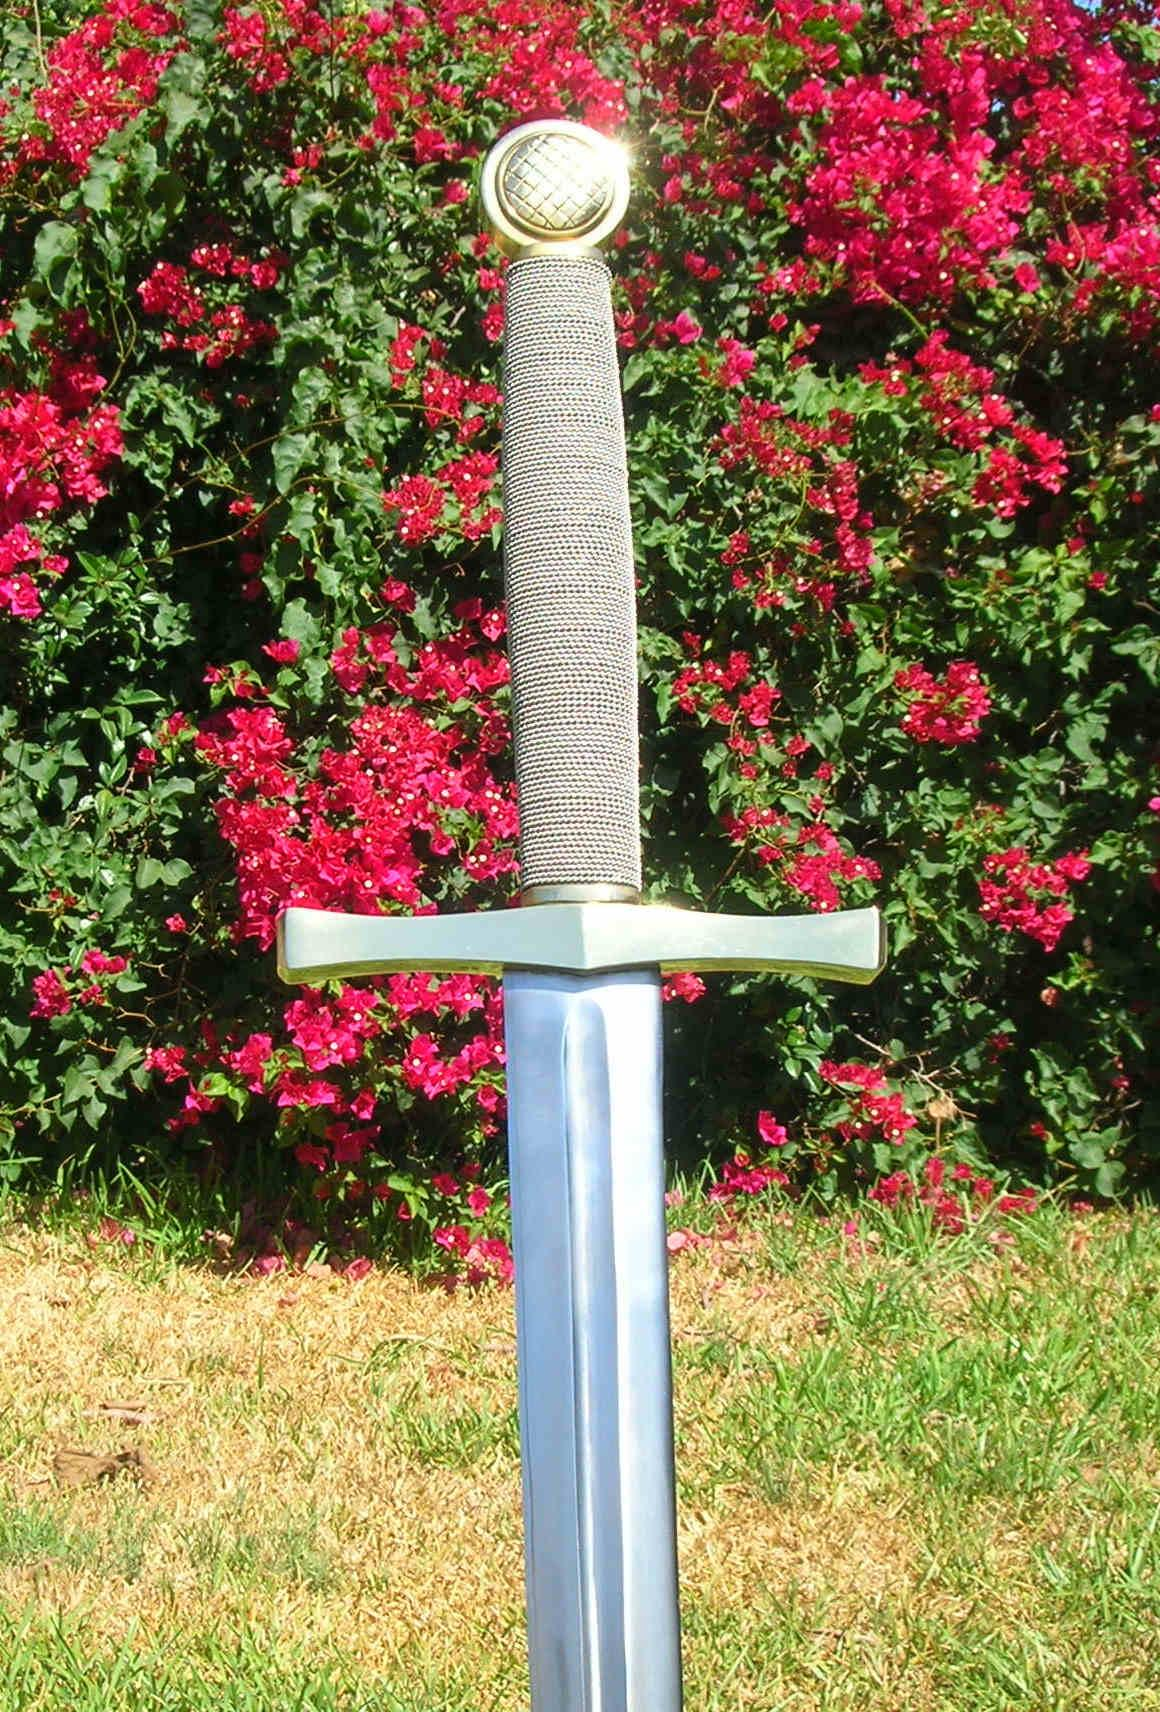 The Sword of Power, Excalibur